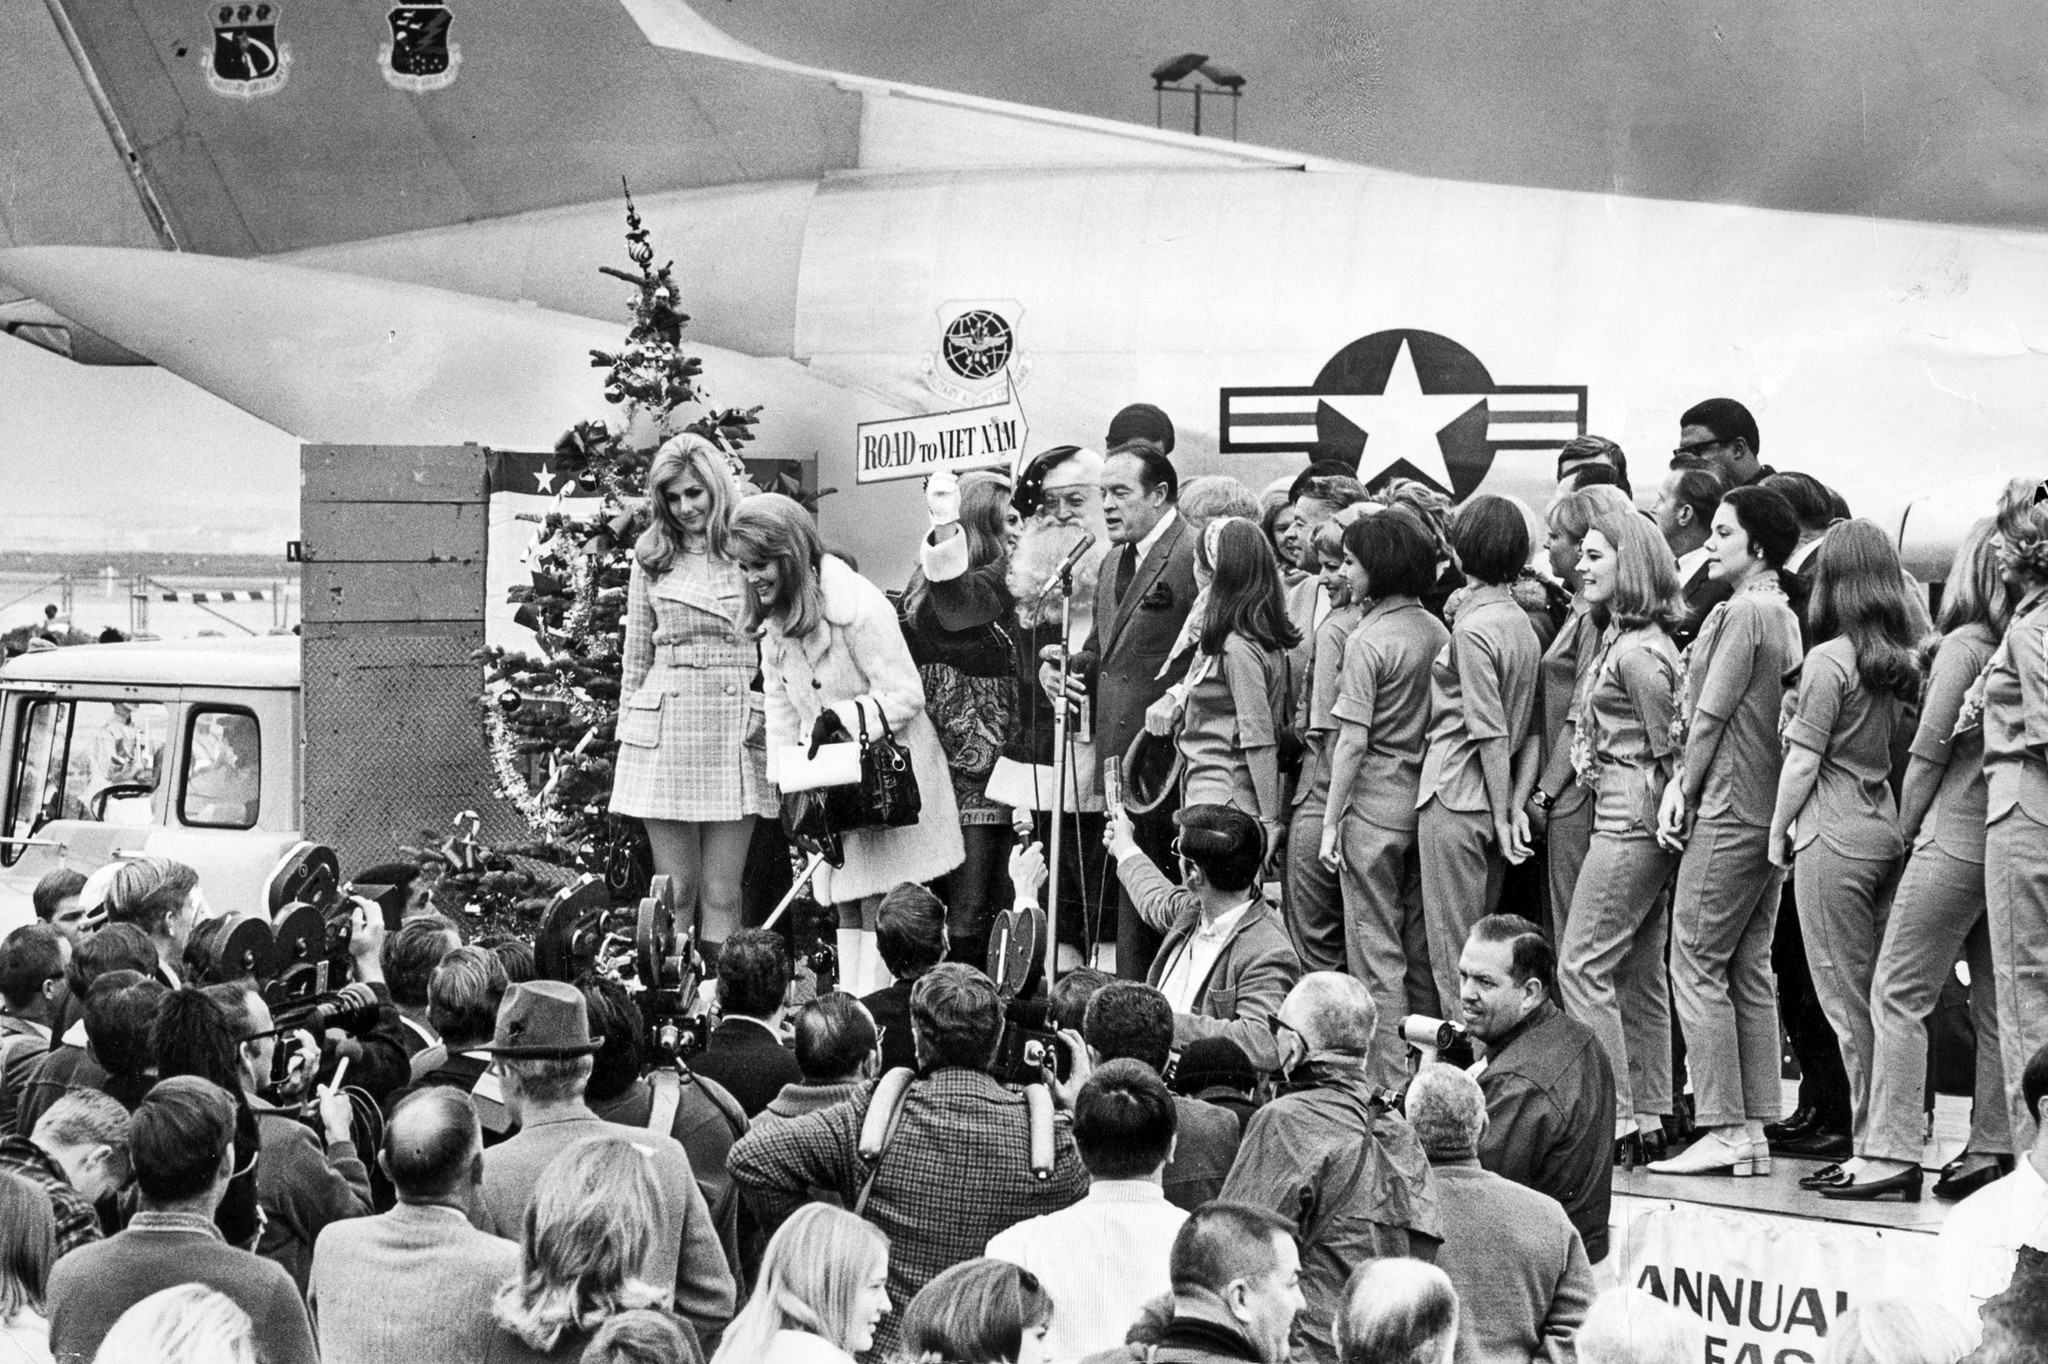 Dec. 14, 1968: Bob Hope and members of his troupe prepare to leave for Vietnam on a flight from LAX.